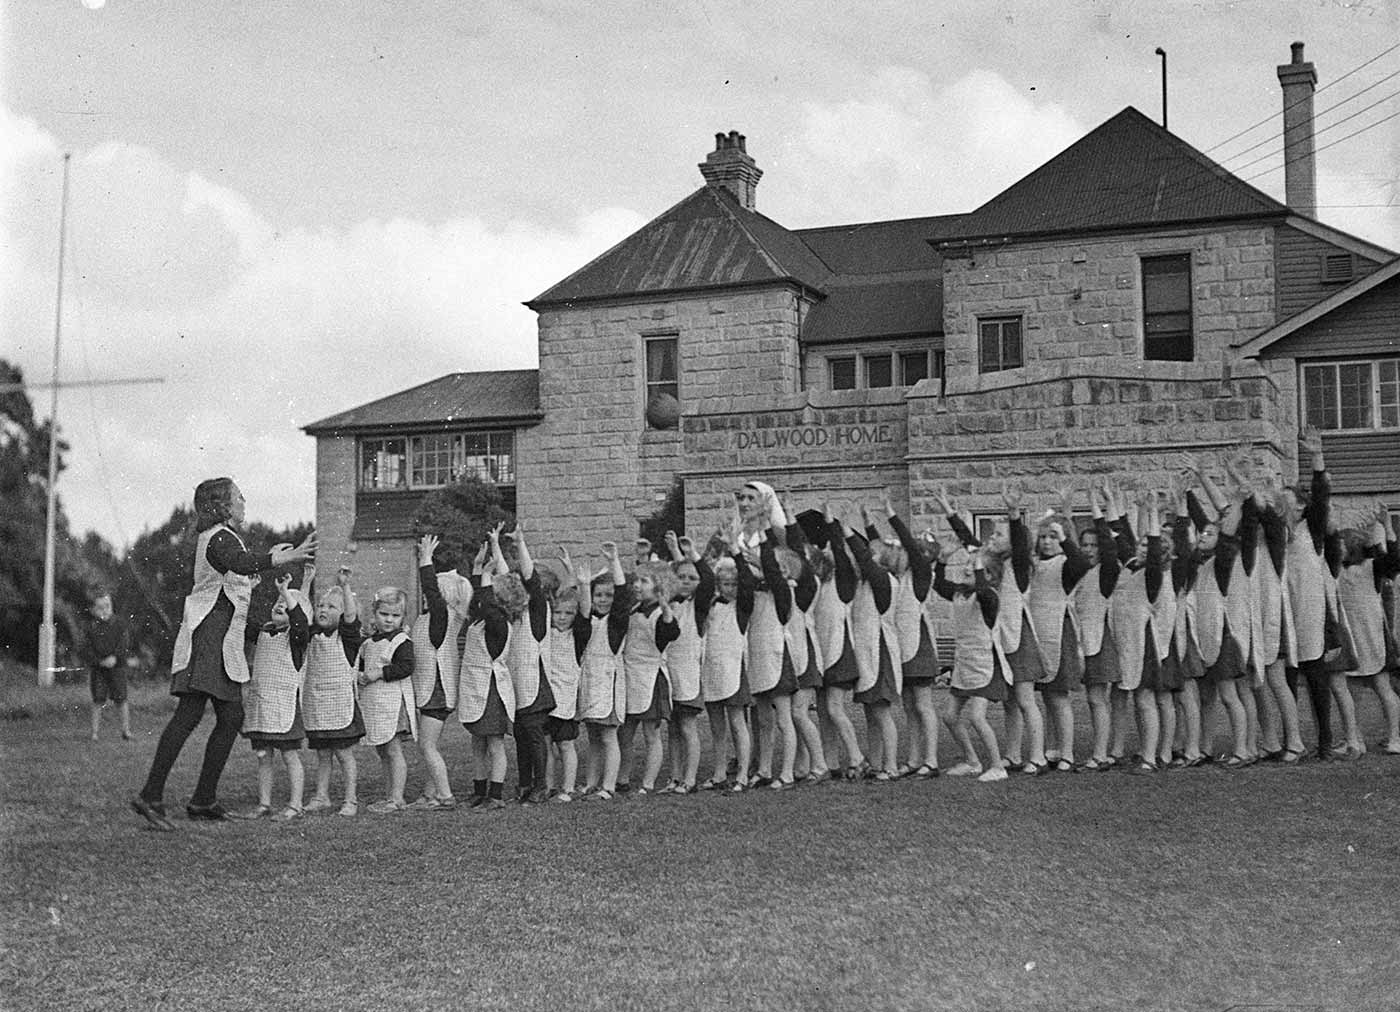 Black and white photograph showing a side view of a long line of girls, standing in front of a large sandstone building which has 'DALWOOD HOME' inscribed on one side. An older girl reaches forward after throwing a ball above the other girls' outstretched arms. A woman wearing a white veil stands about halfway down the line, behind the girls. Each of the girls wears an apron over a dress. - click to view larger image